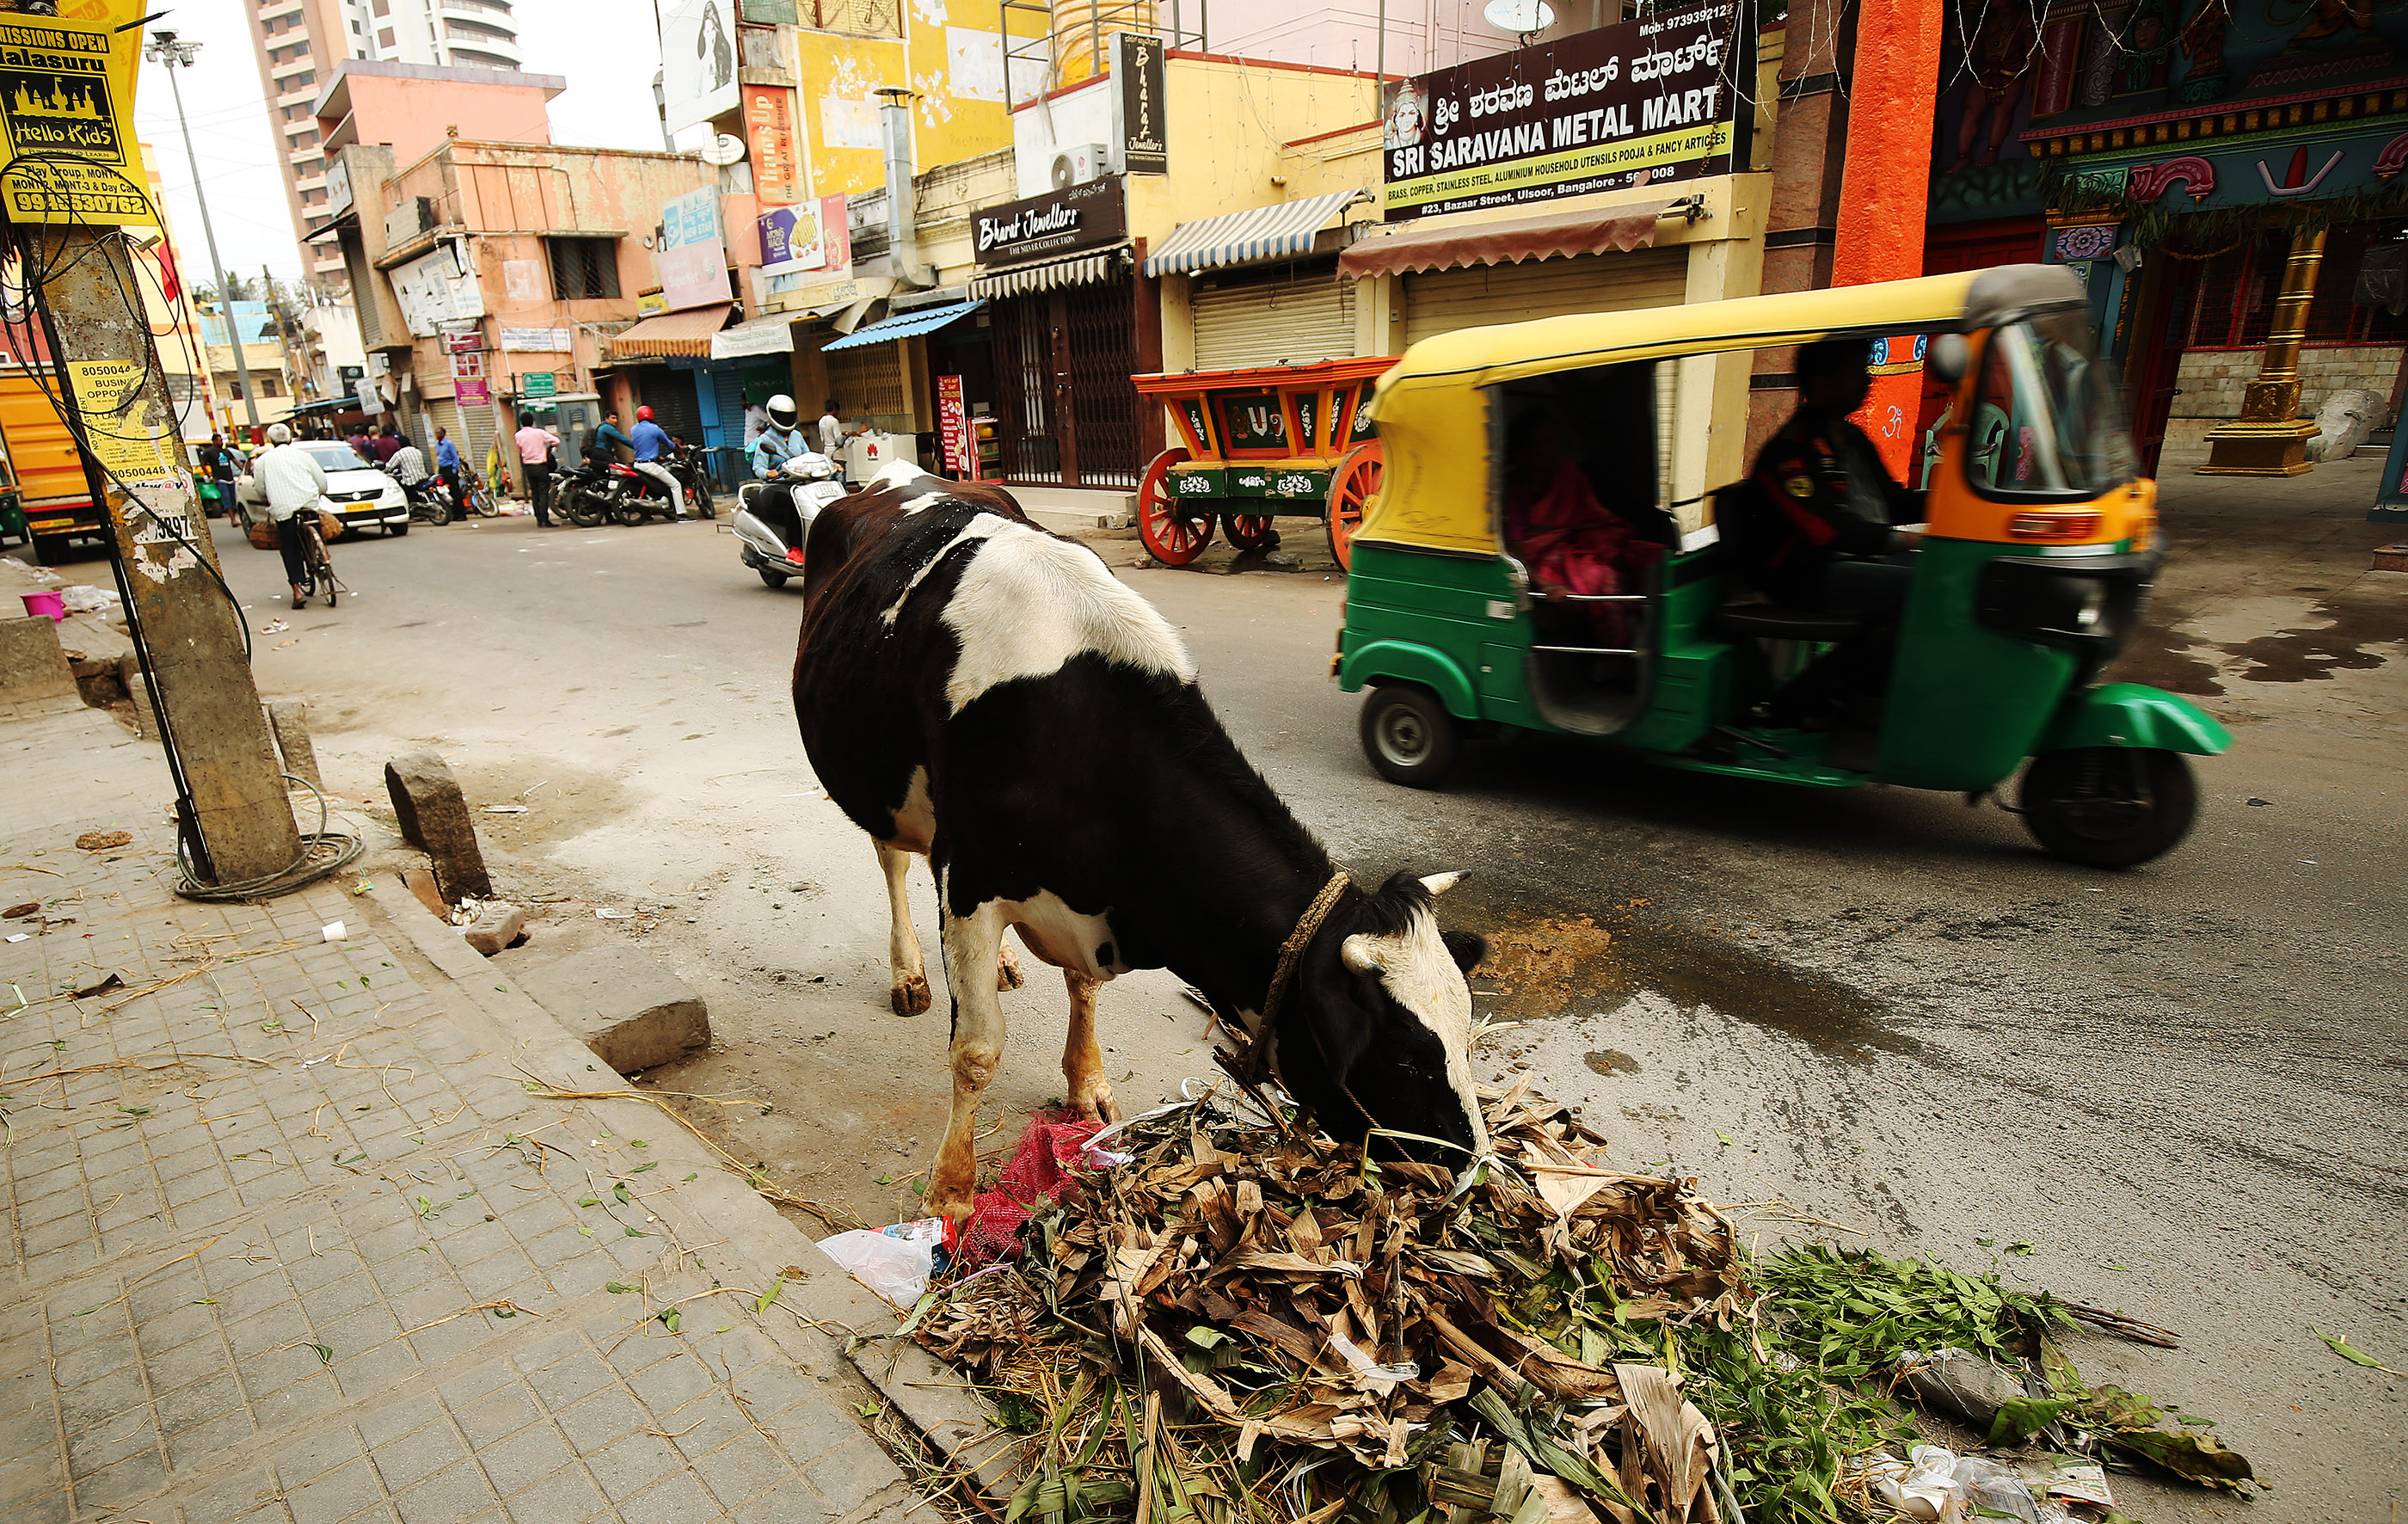 A cow eats in a street in Bengaluru, India, on Thursday, April 19, 2018.